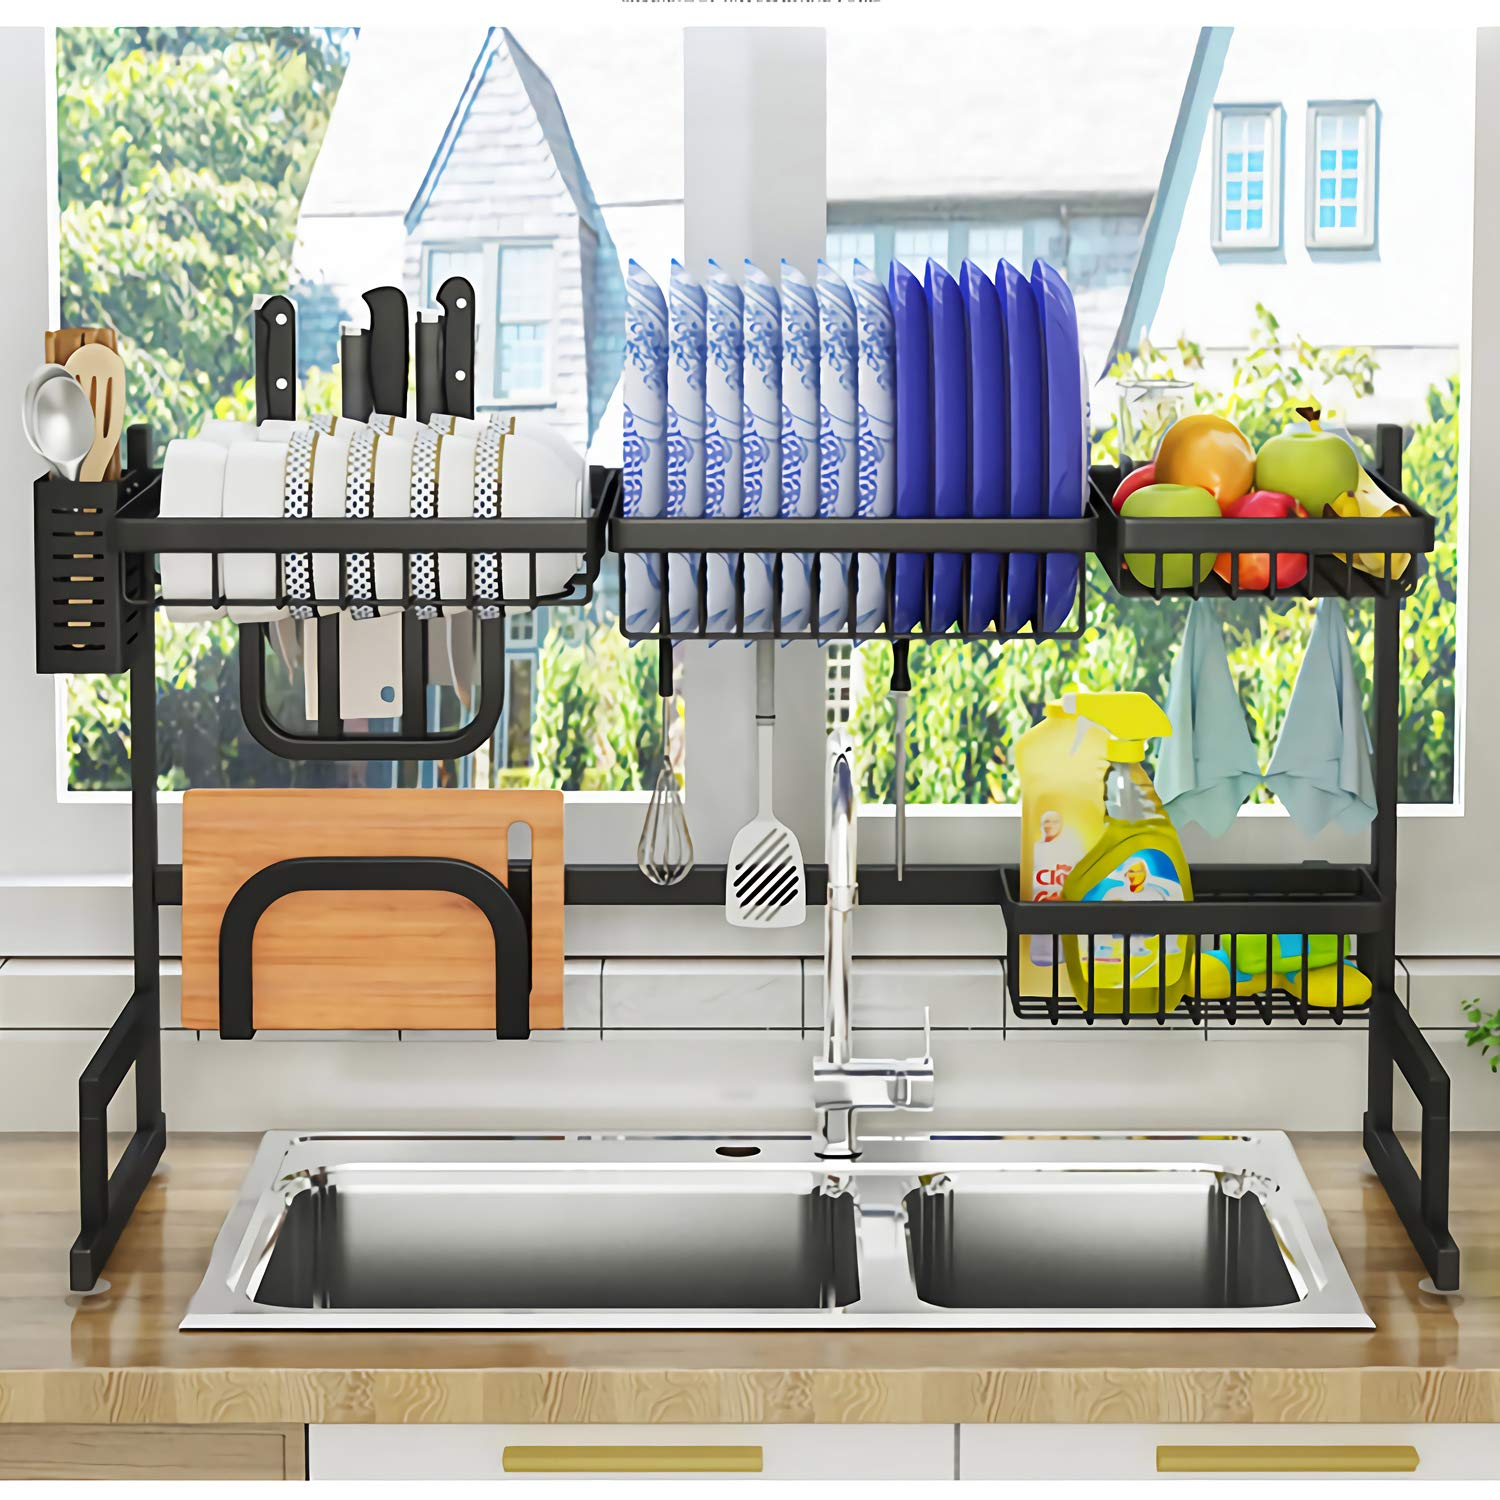 "Over Sink(33"") Dish Drying Rack, Drainer Shelf for Kitchen Supplies Storage Counter Organizer Utensils Holder Stainless Steel Display- Kitchen Space Save Must Have (Sink size≤33 1/2 inch, black)"